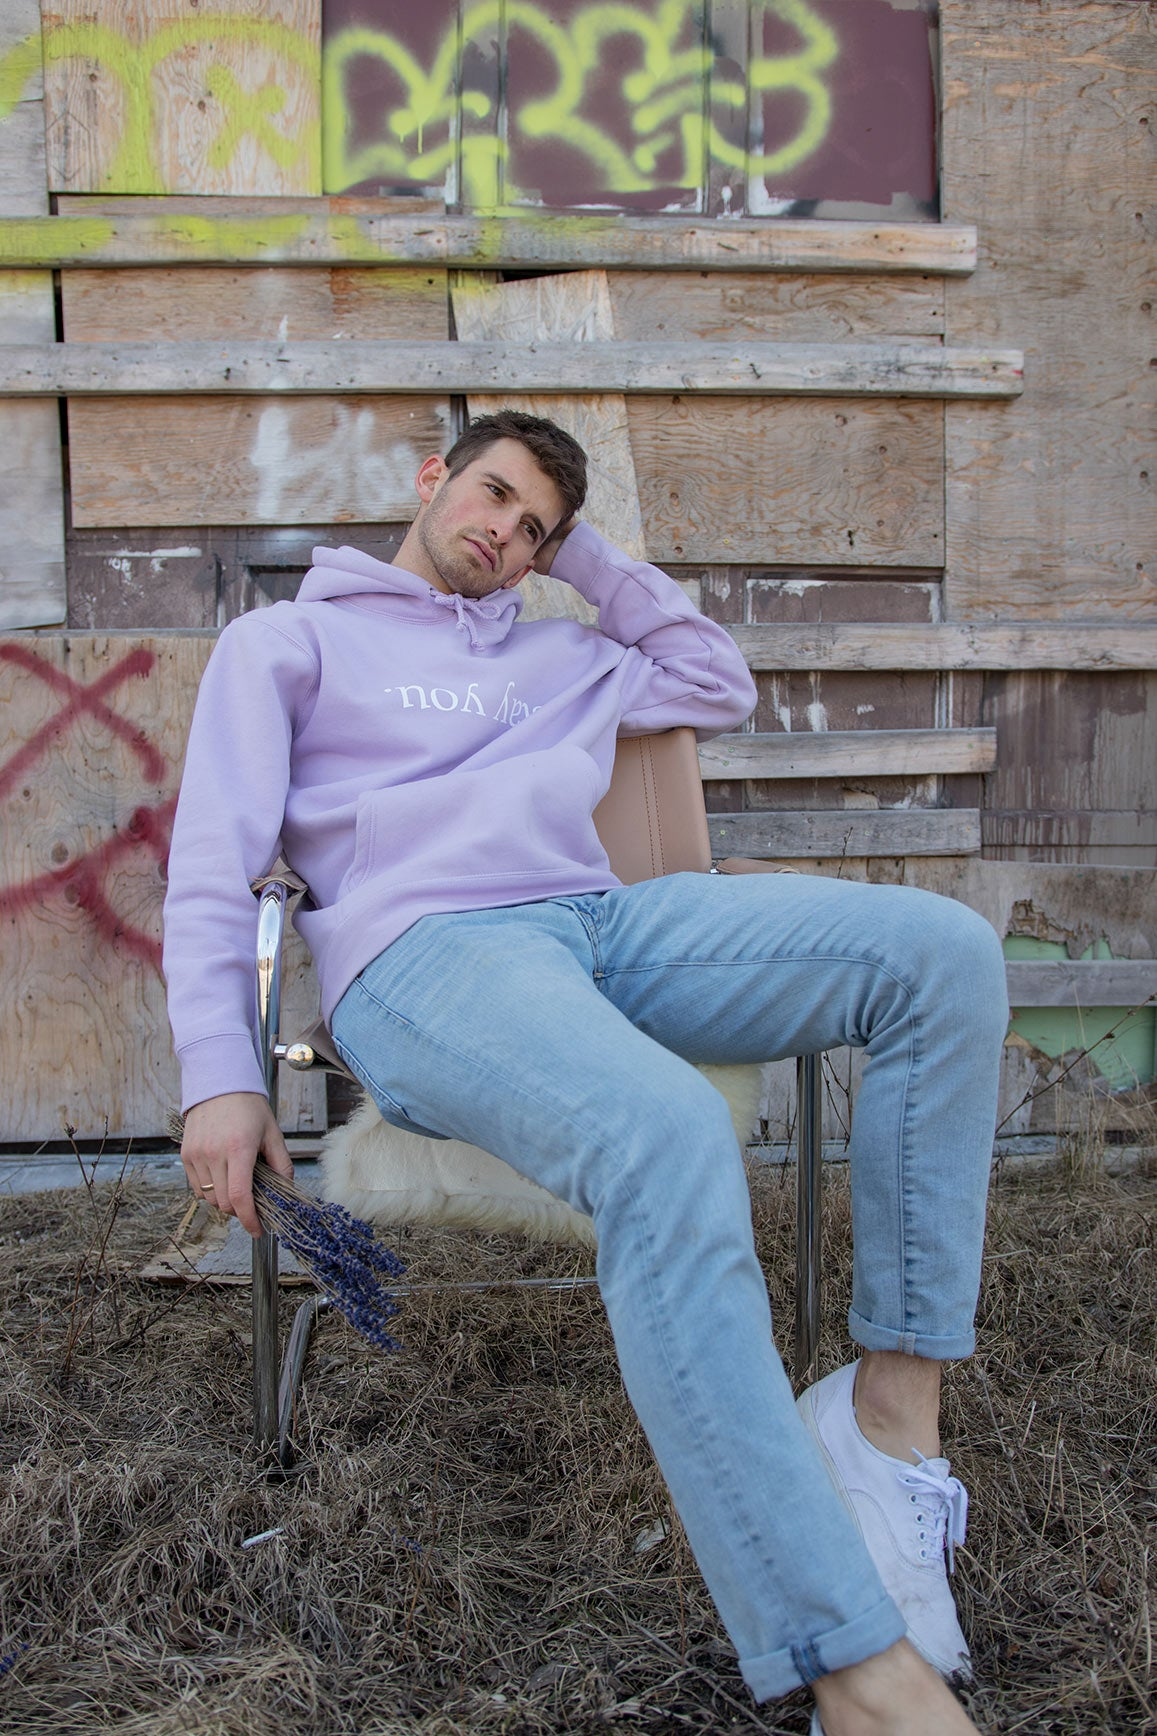 'Stay You' Printed Hoodie in Lush Lavender and Antique White